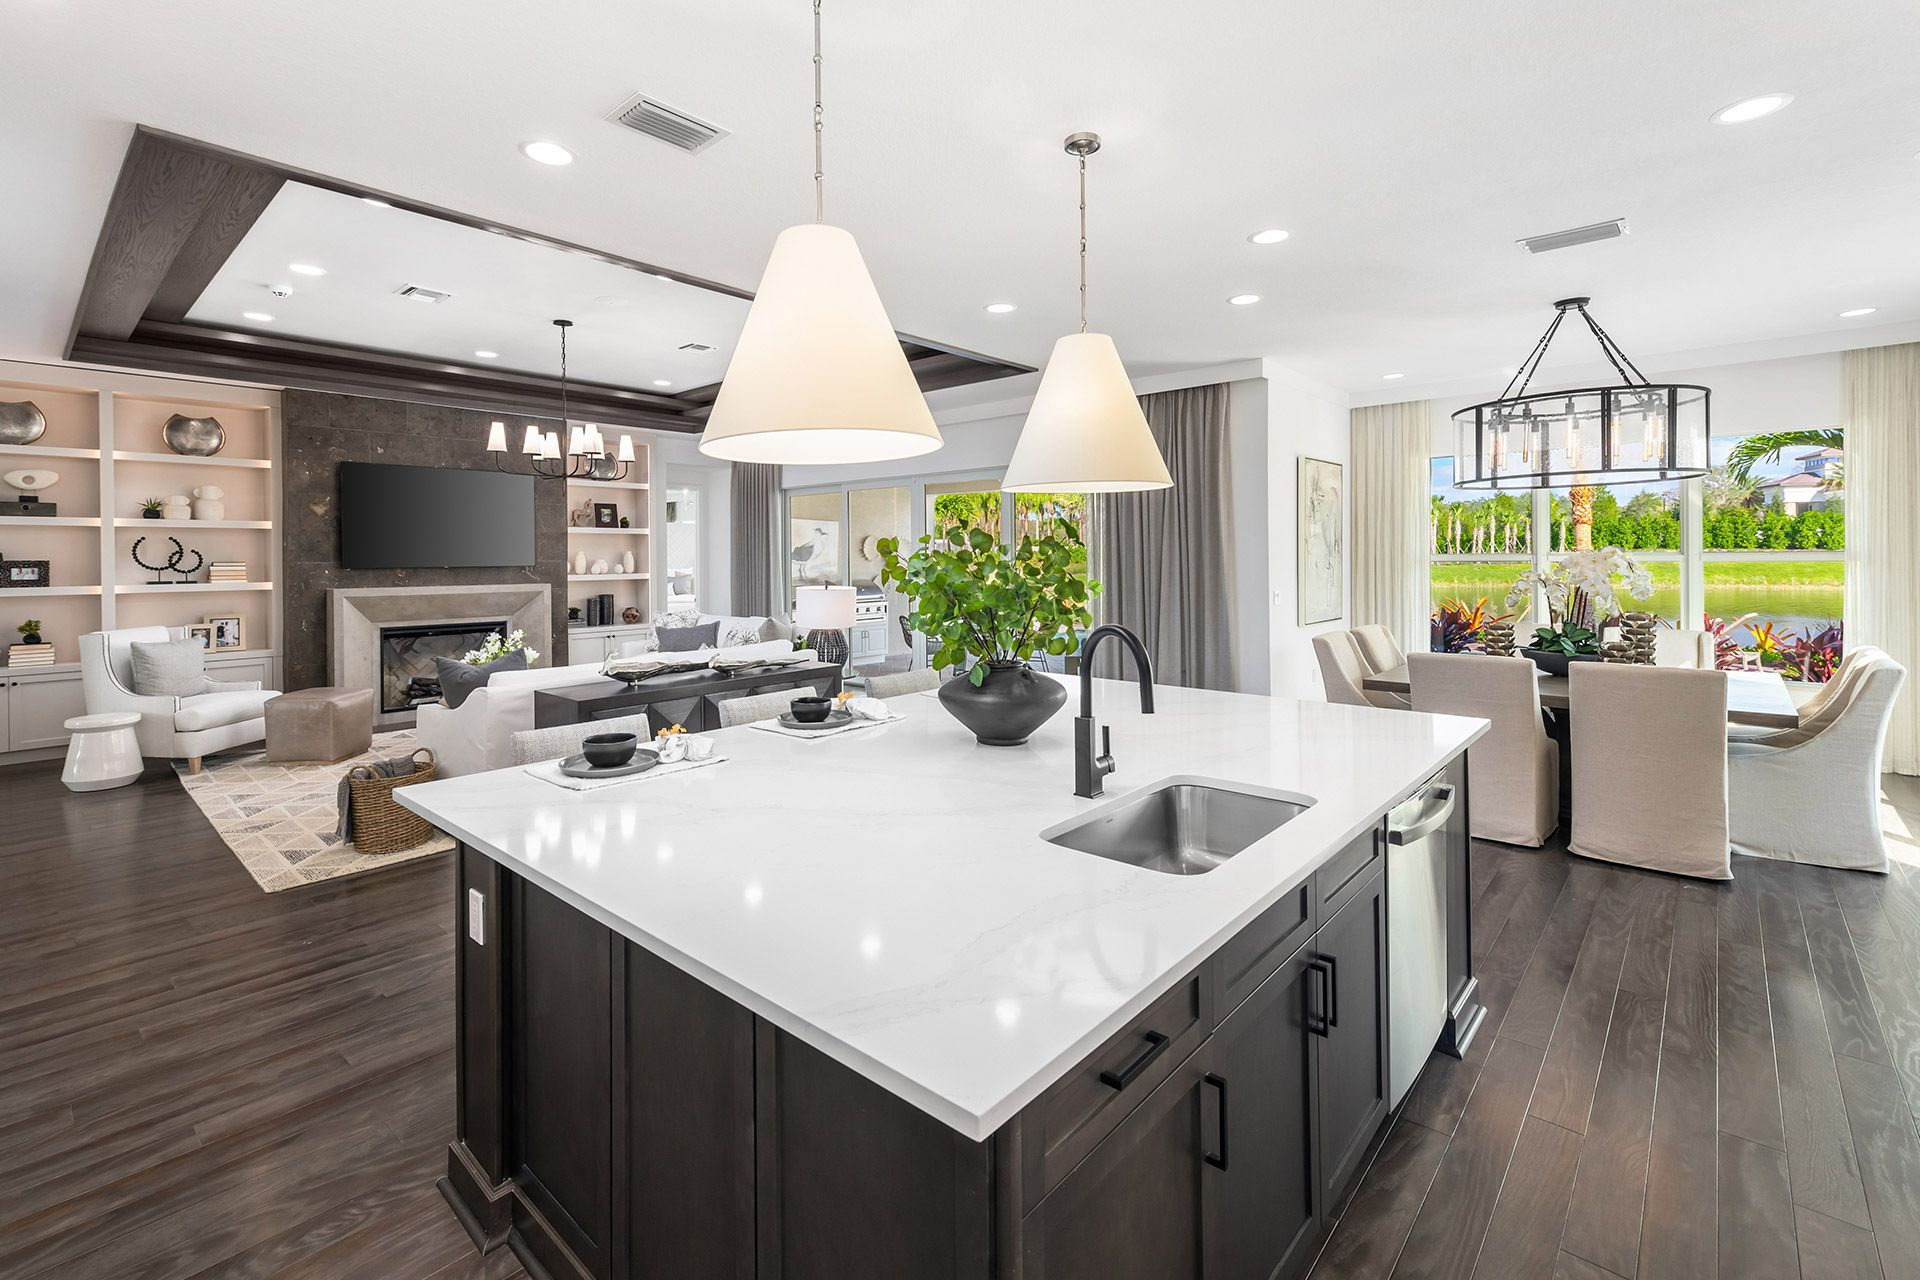 Kitchen featured in the Sanibel By GL Homes in Naples, FL